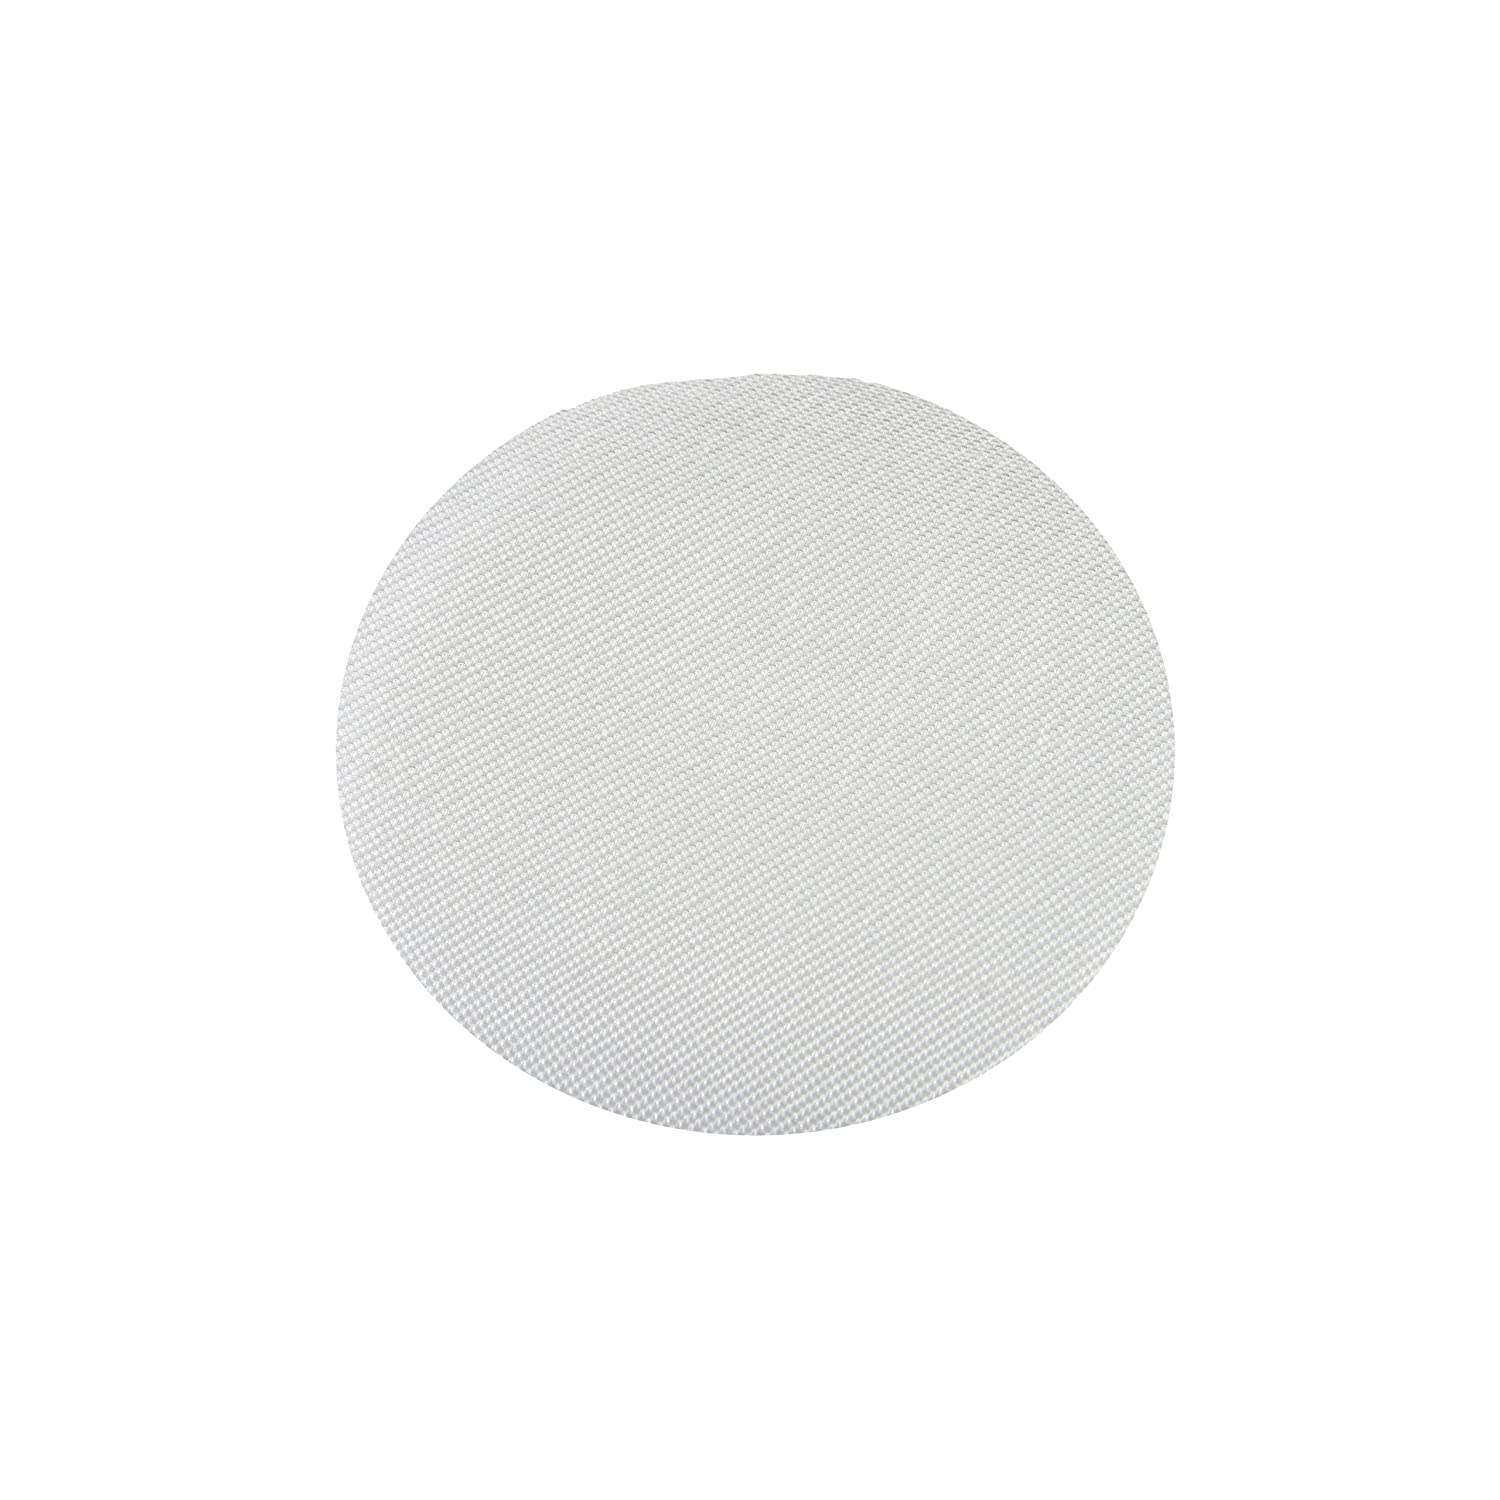 Millipore JHWP01300 White PTFE Omnipore Hydrophilic Membrane Filters, 13mm Diameter, 0.45 Micron (Pack of 100)